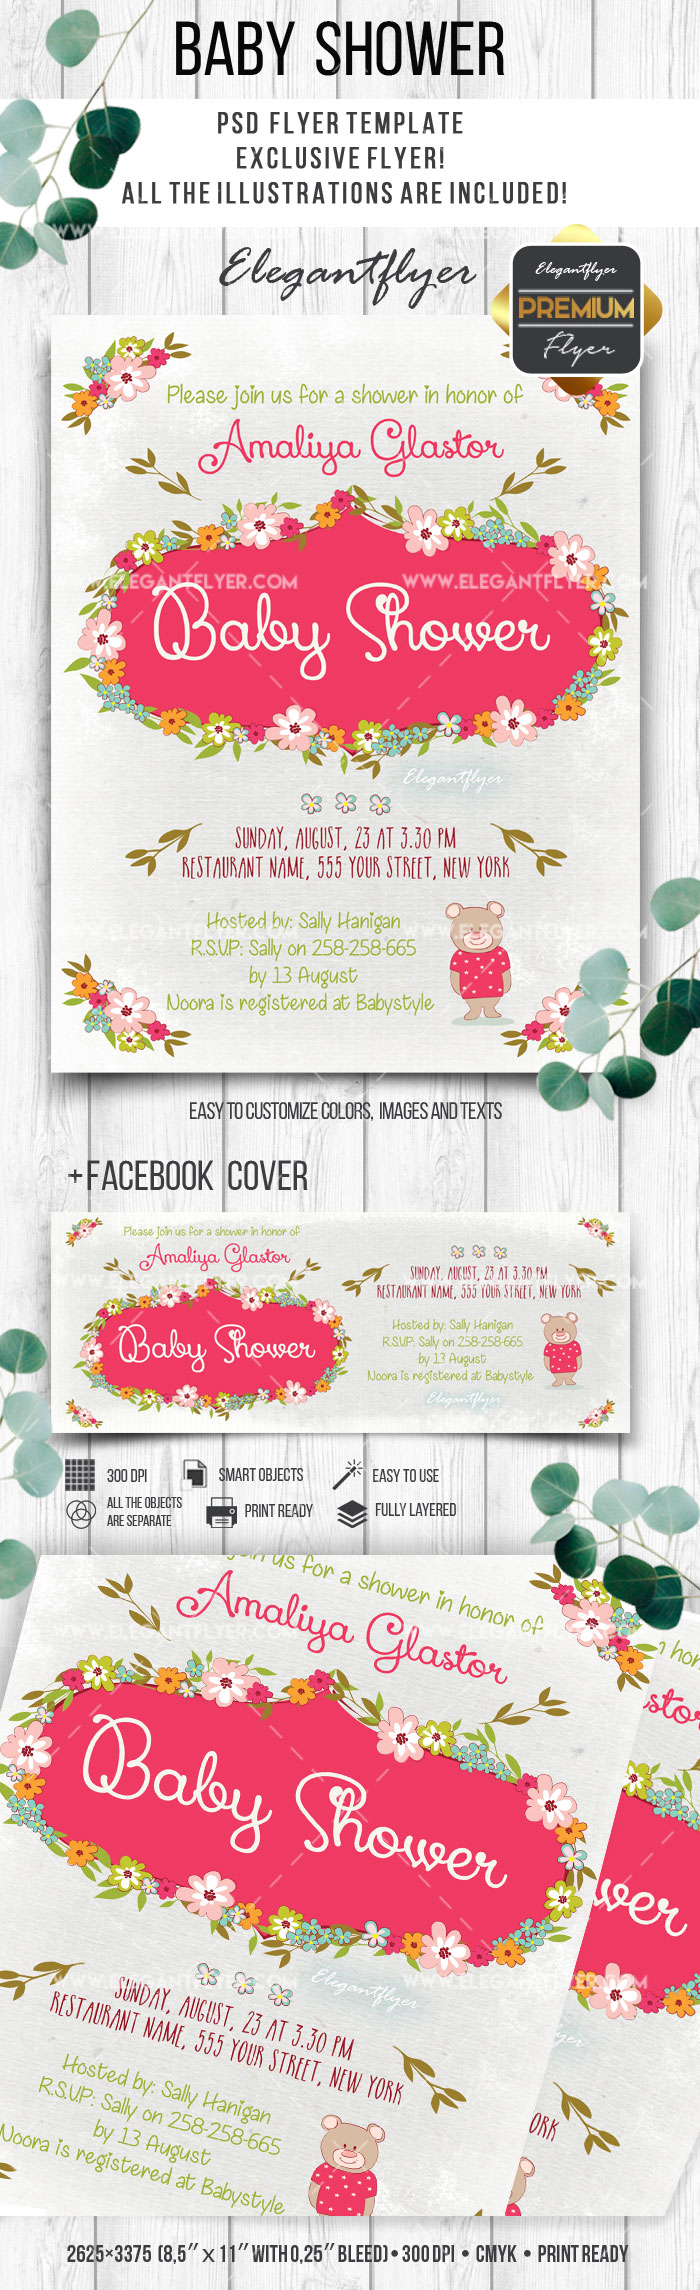 Baby Shower Flower Bouquet Template